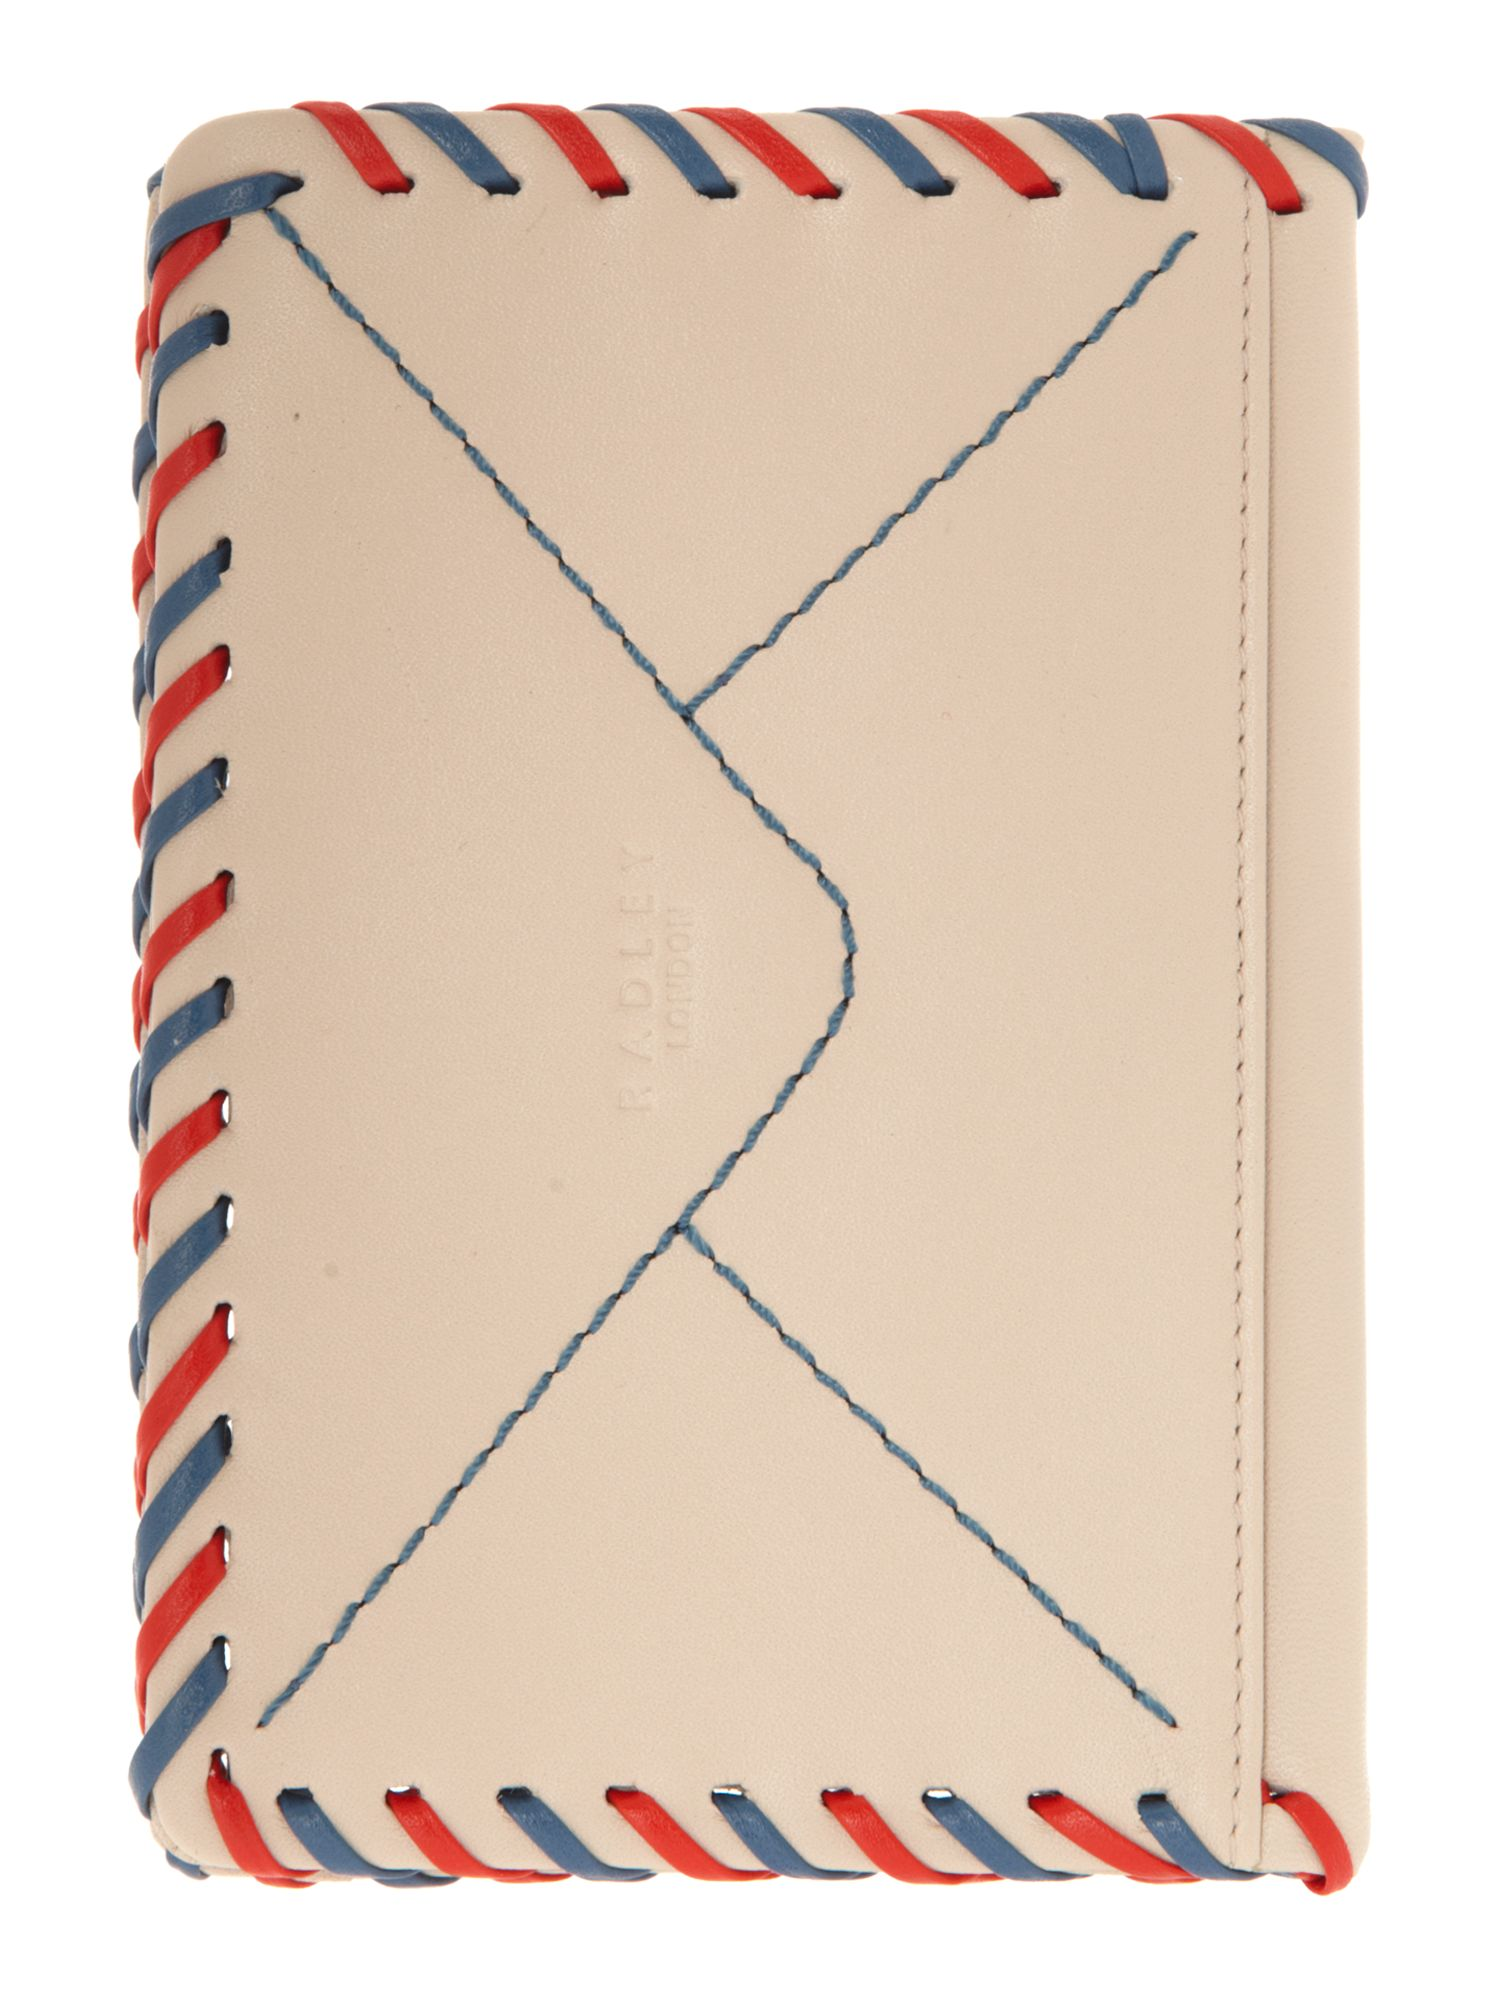 The travelling wanderer passport cover